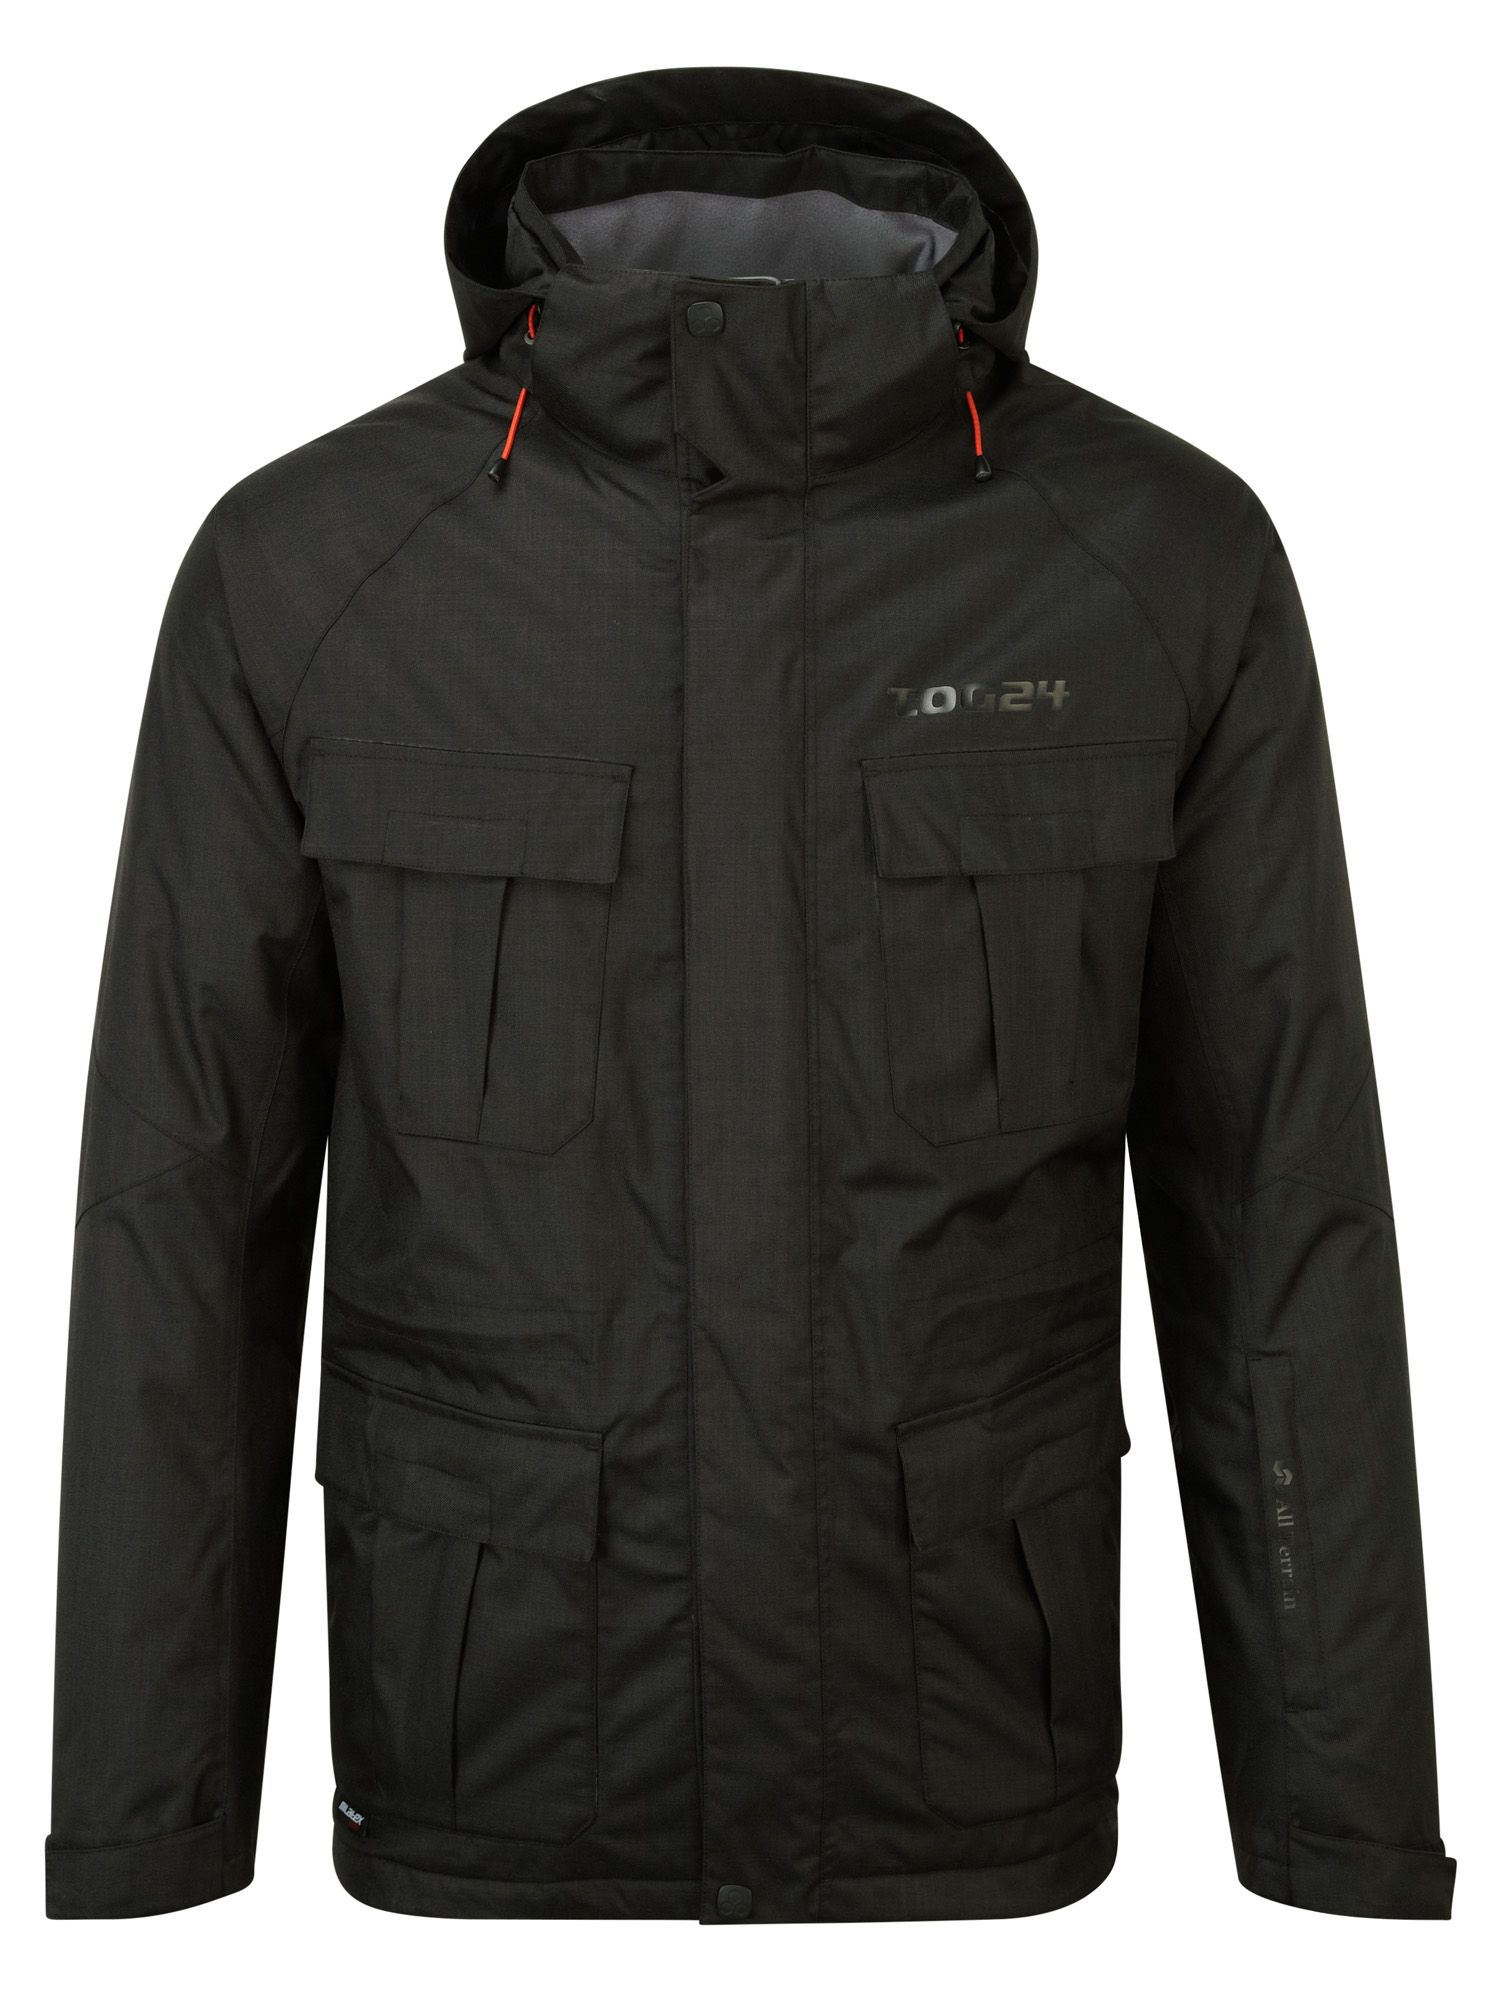 Goggle Jacket Shop For Cheap Products And Save Online